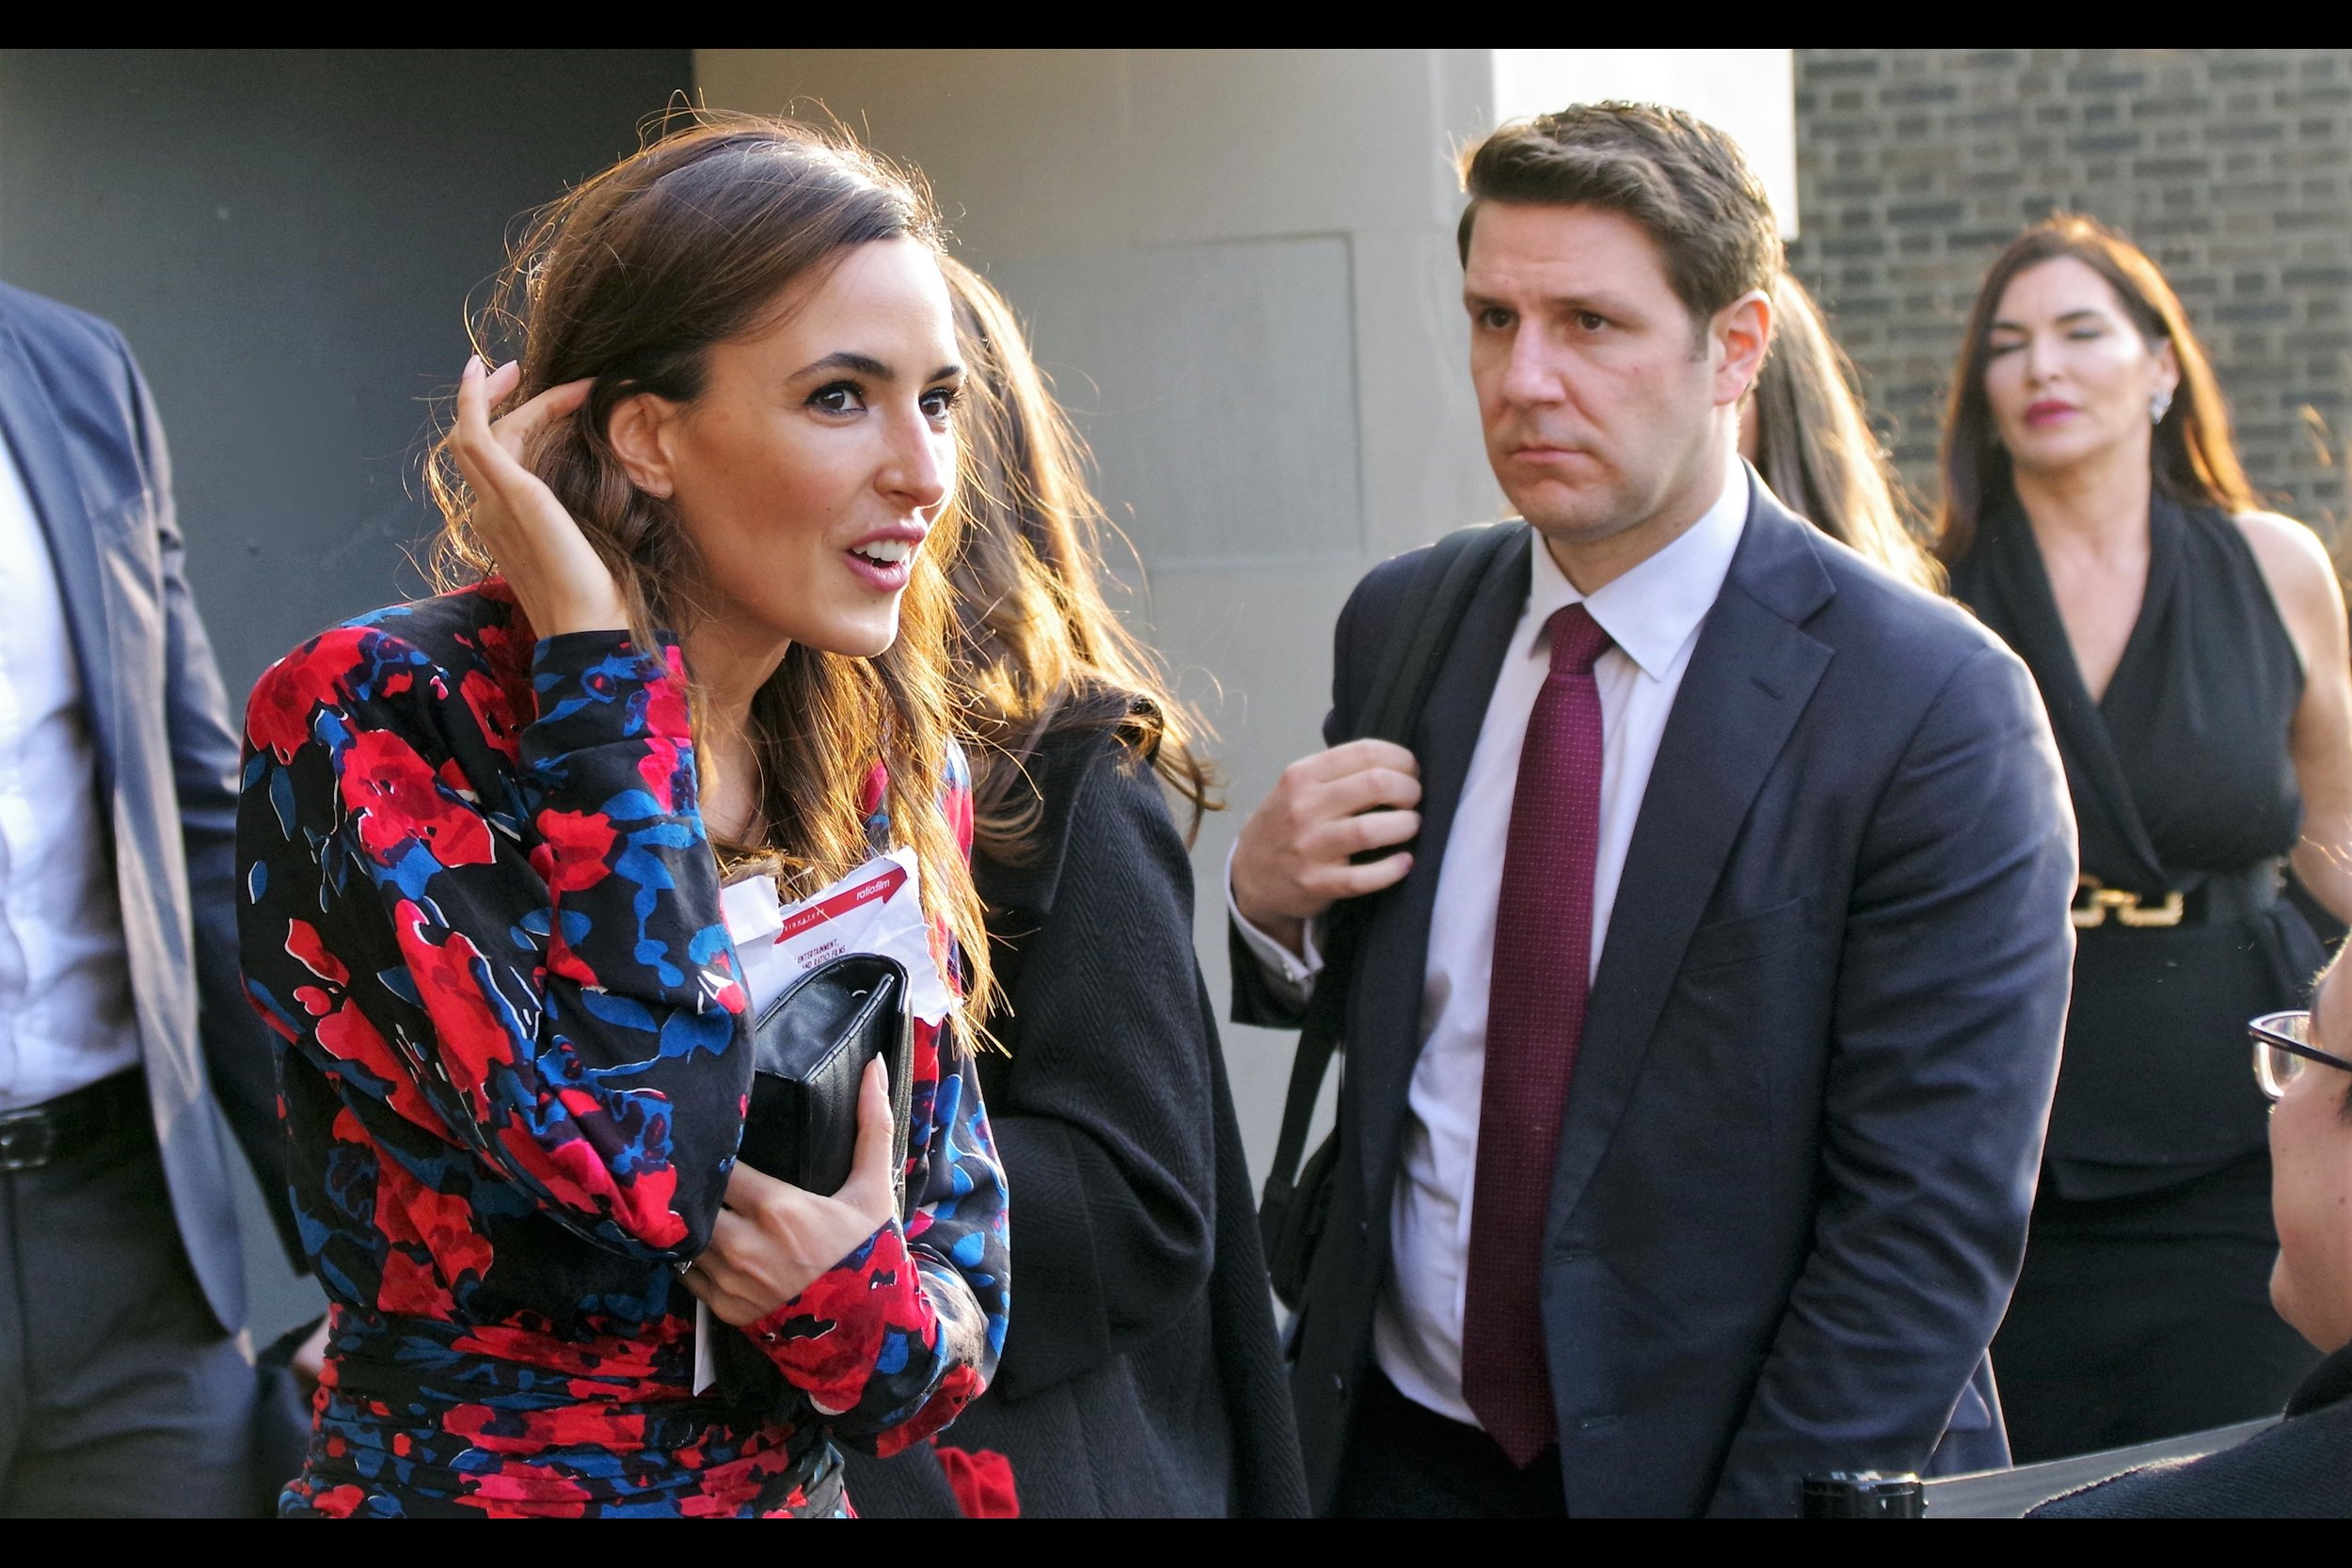 I don't know who Nadia Forde is. Or why that man in the background is looking so glum. I mean.. sure, I'd NEVER have worn a suit and tie to this event if I had a leather jacket and neck tattoos handy instead, but that's a mistake he can hopefully bounce back from.